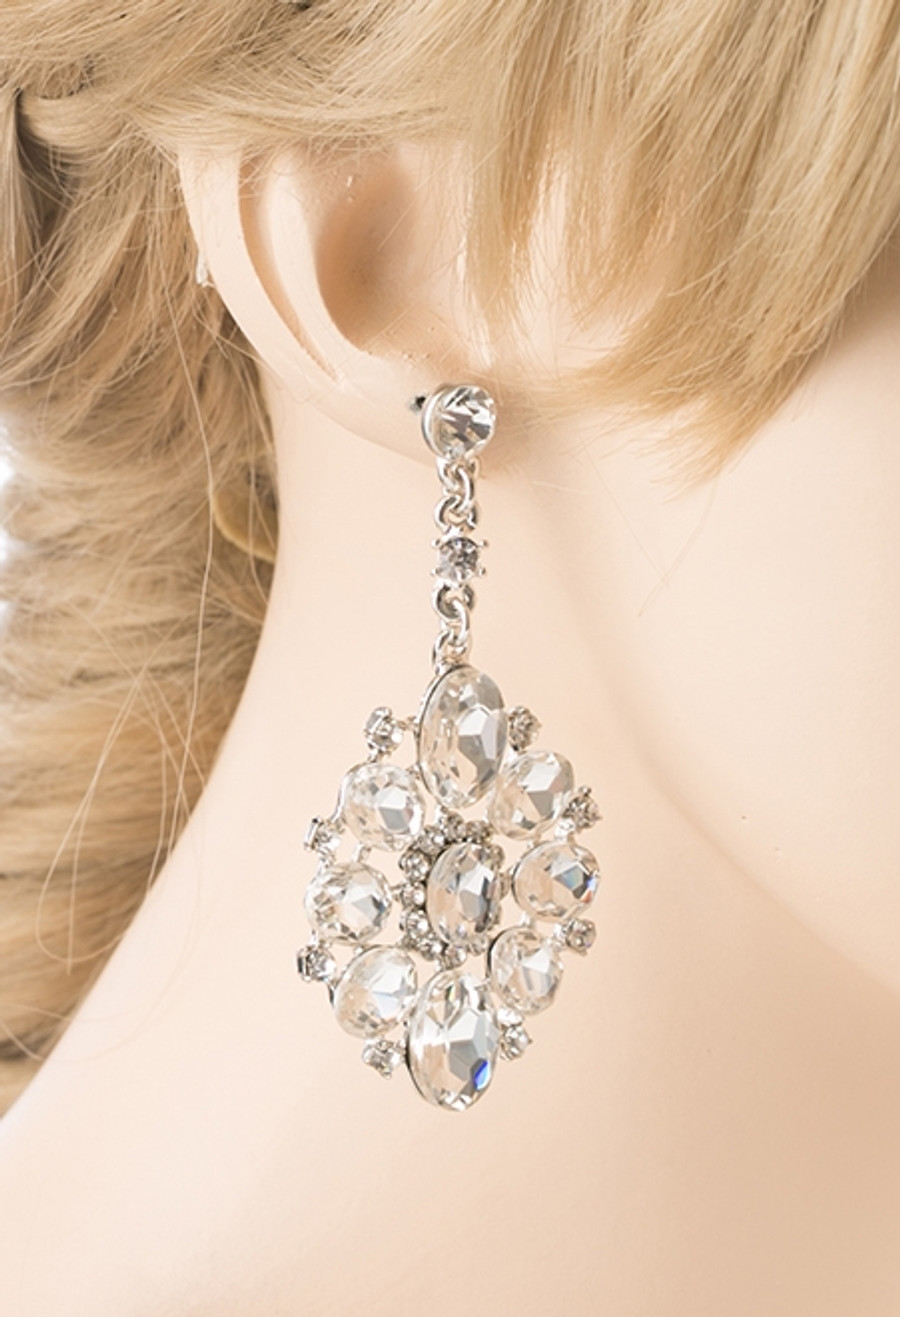 Bridal Wedding Jewelry Crystal Rhinestone Dangle Drop Earrings E611SV